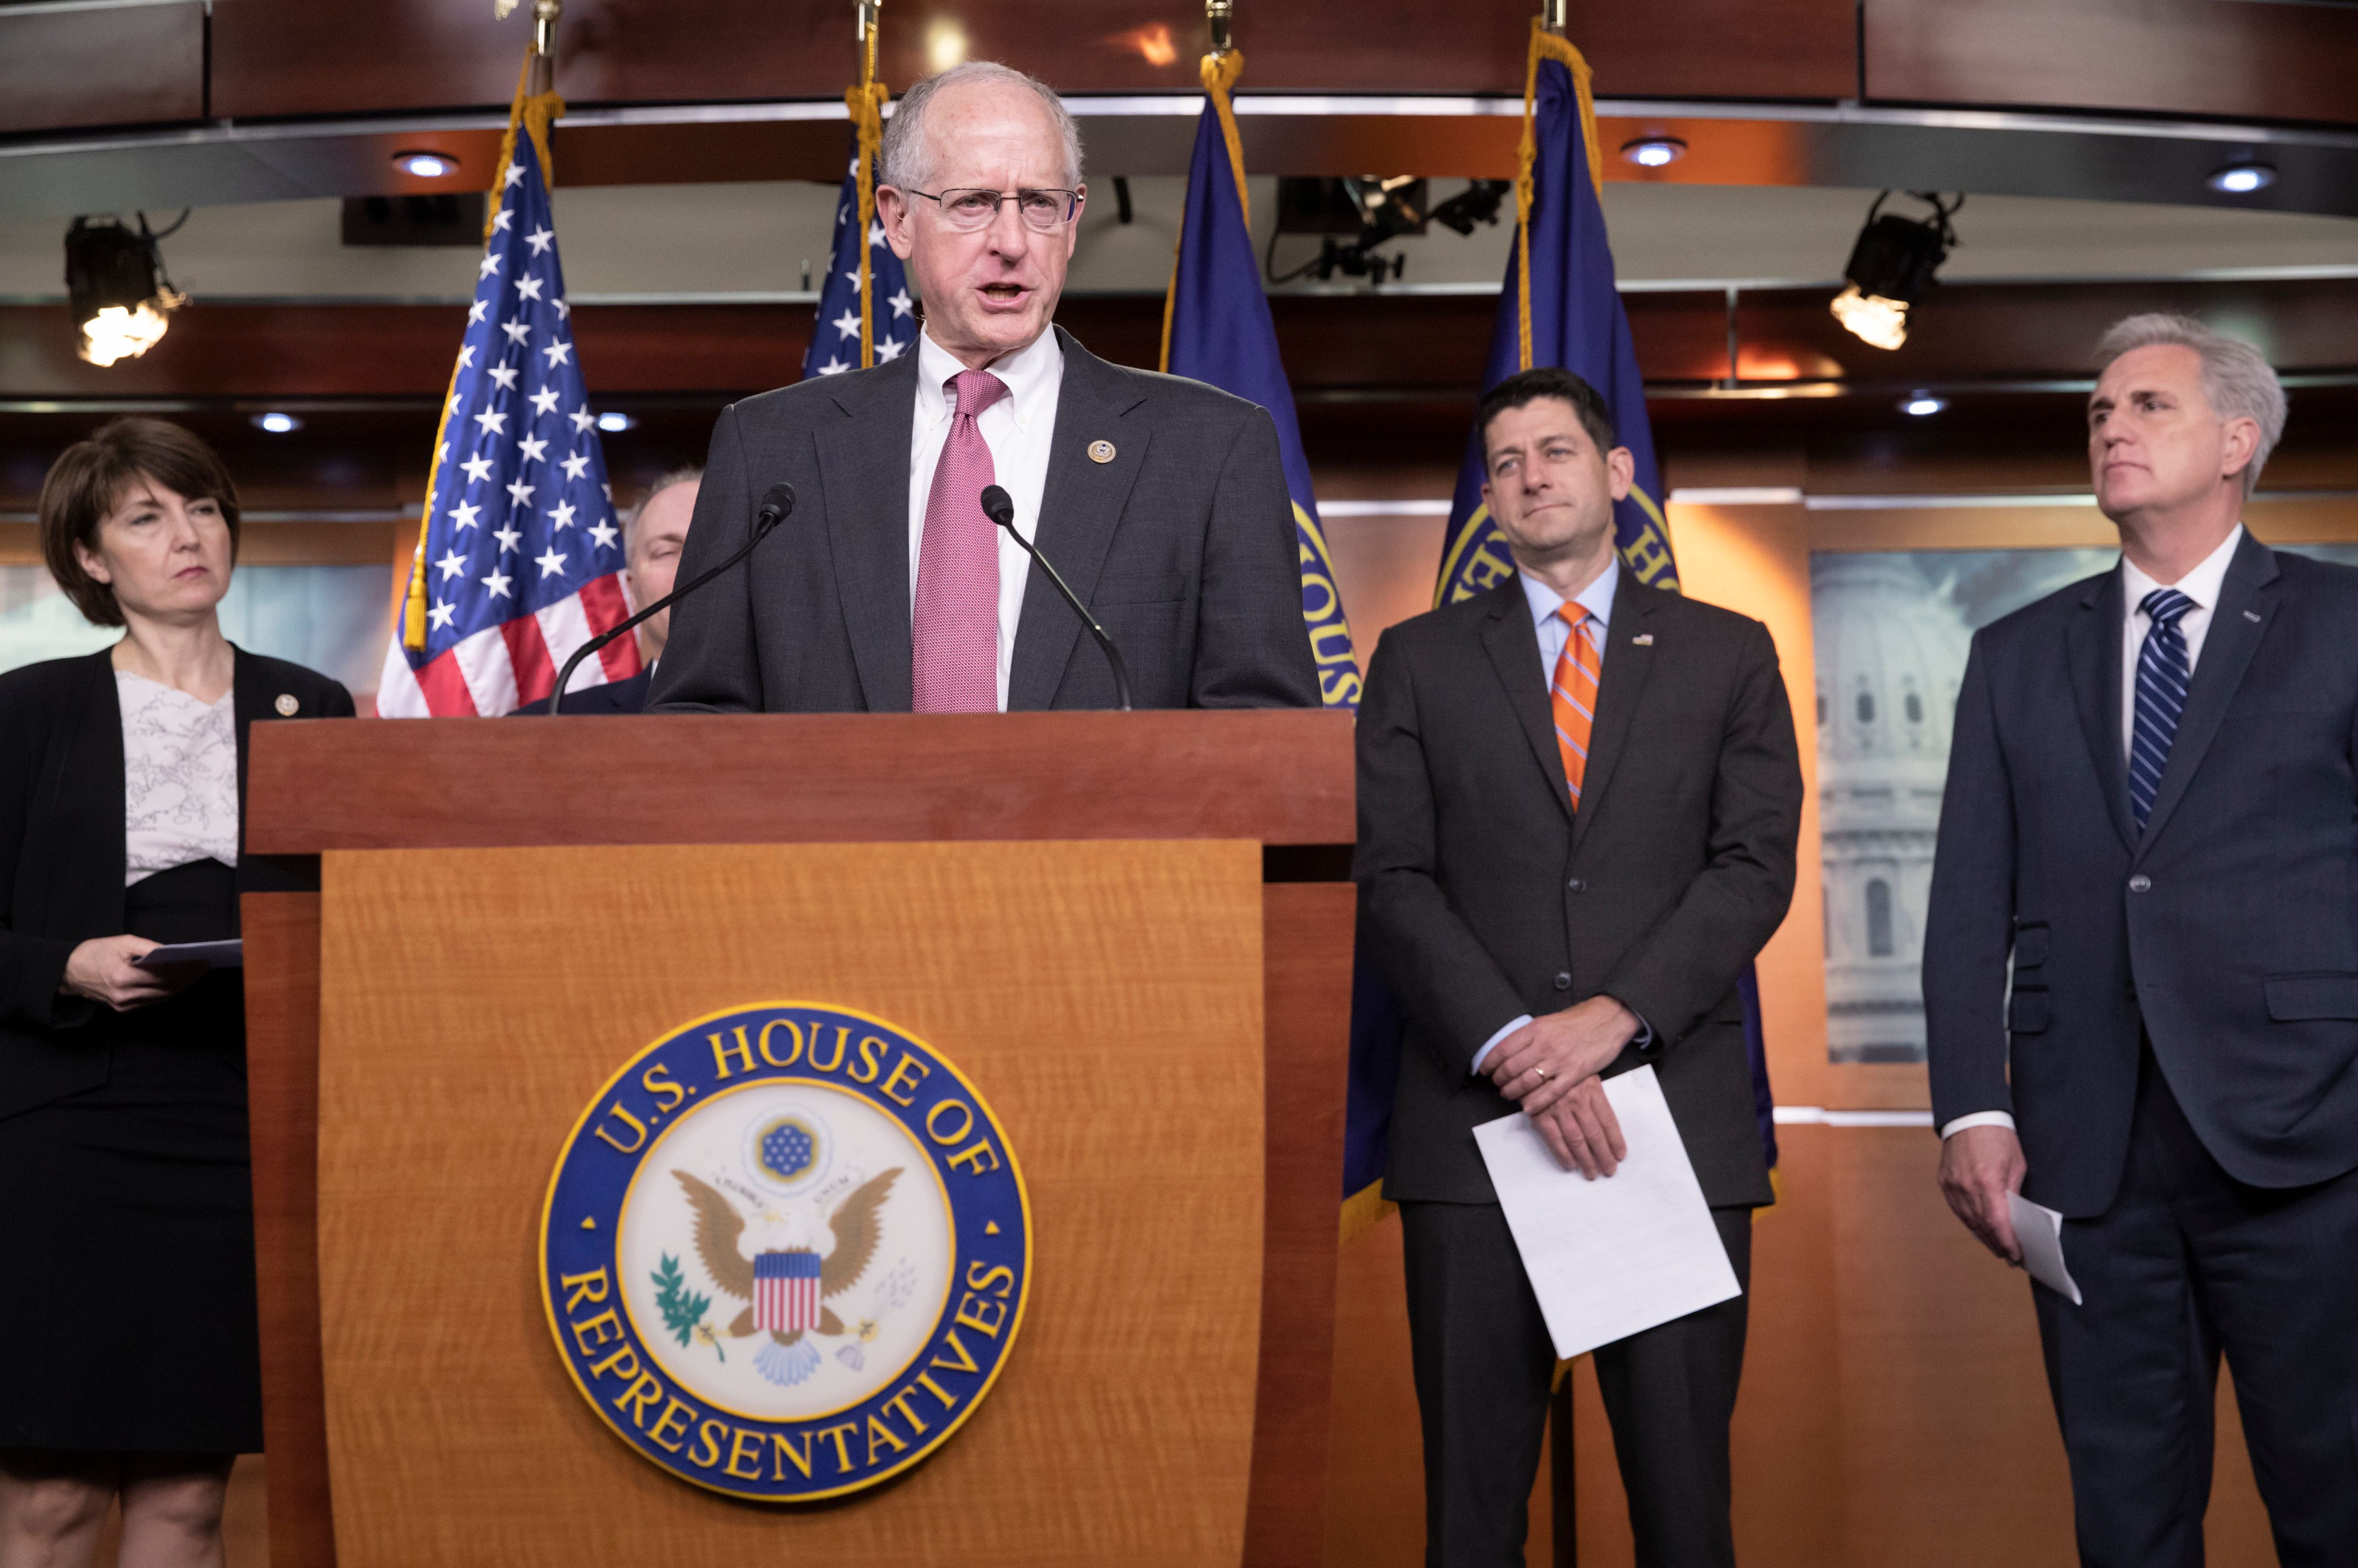 House Agriculture Committee Chairman Mike Conaway, R-Texas, joined from left by Rep. Cathy McMorris Rodgers, R-Wash., Speaker of the House Paul Ryan, R-Wis., and Majority Leader Kevin McCarthy, R-Calif., touts the newly-crafted farm bill during a news conference on Capitol Hill in Washington, Wednesday, May 16, 2018. The House plans to debate a long list of amendments on the controversial legislation today with House Republicans favoring a plan to strengthen work requirements for food stamps, but Democrats insisting that would hurt the poor. (AP Photo/J. Scott Applewhite)